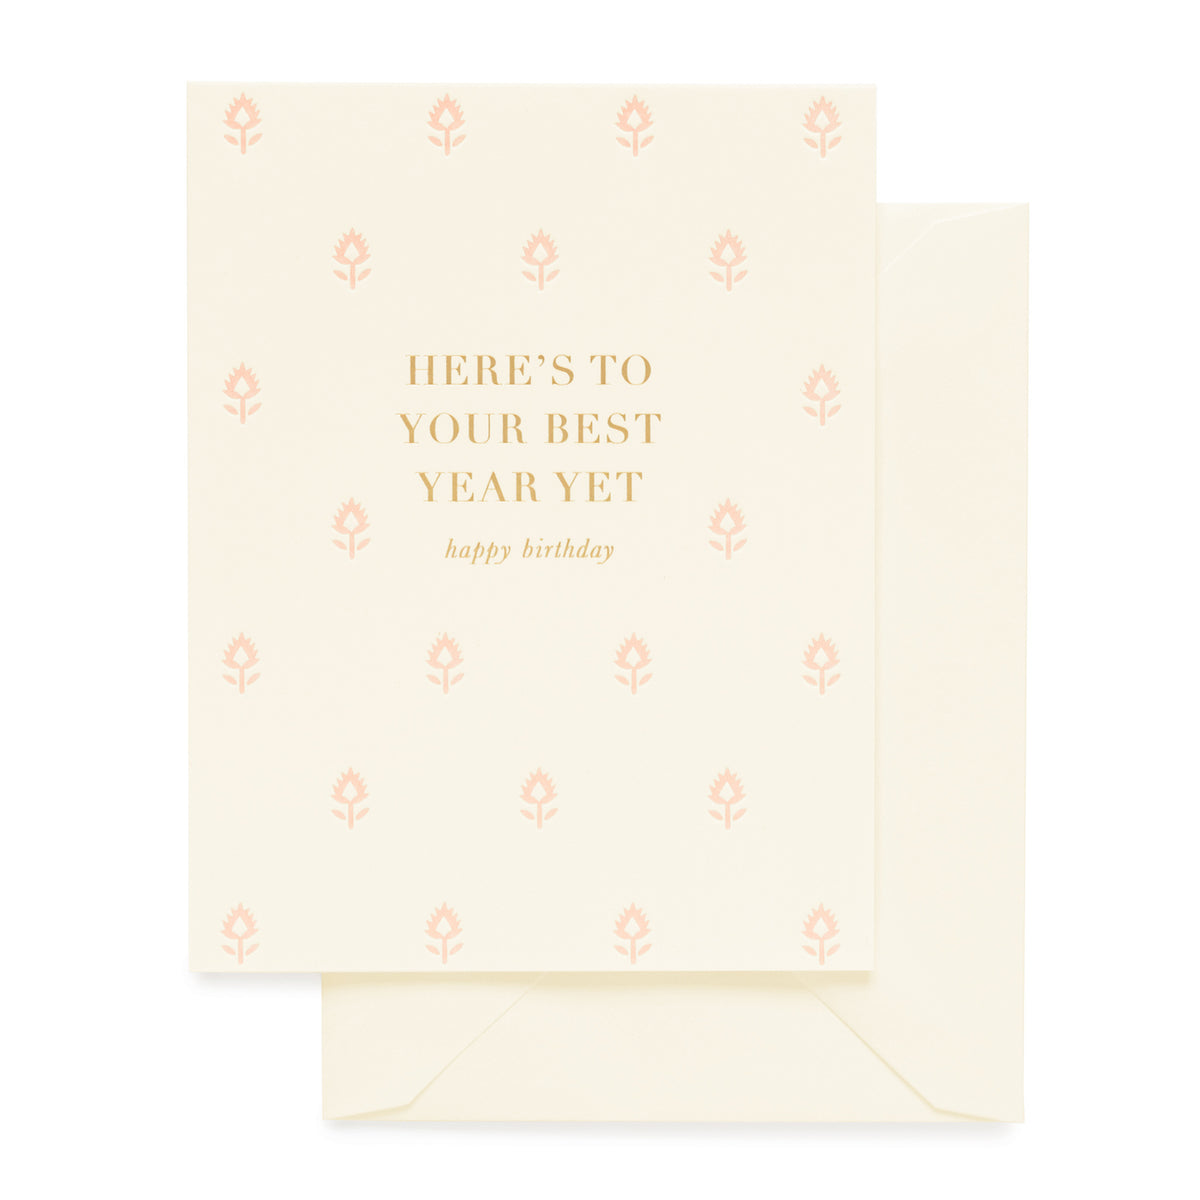 Cream, Pink and Gold Birthday Card with Here's To Your Best Year Yet printed